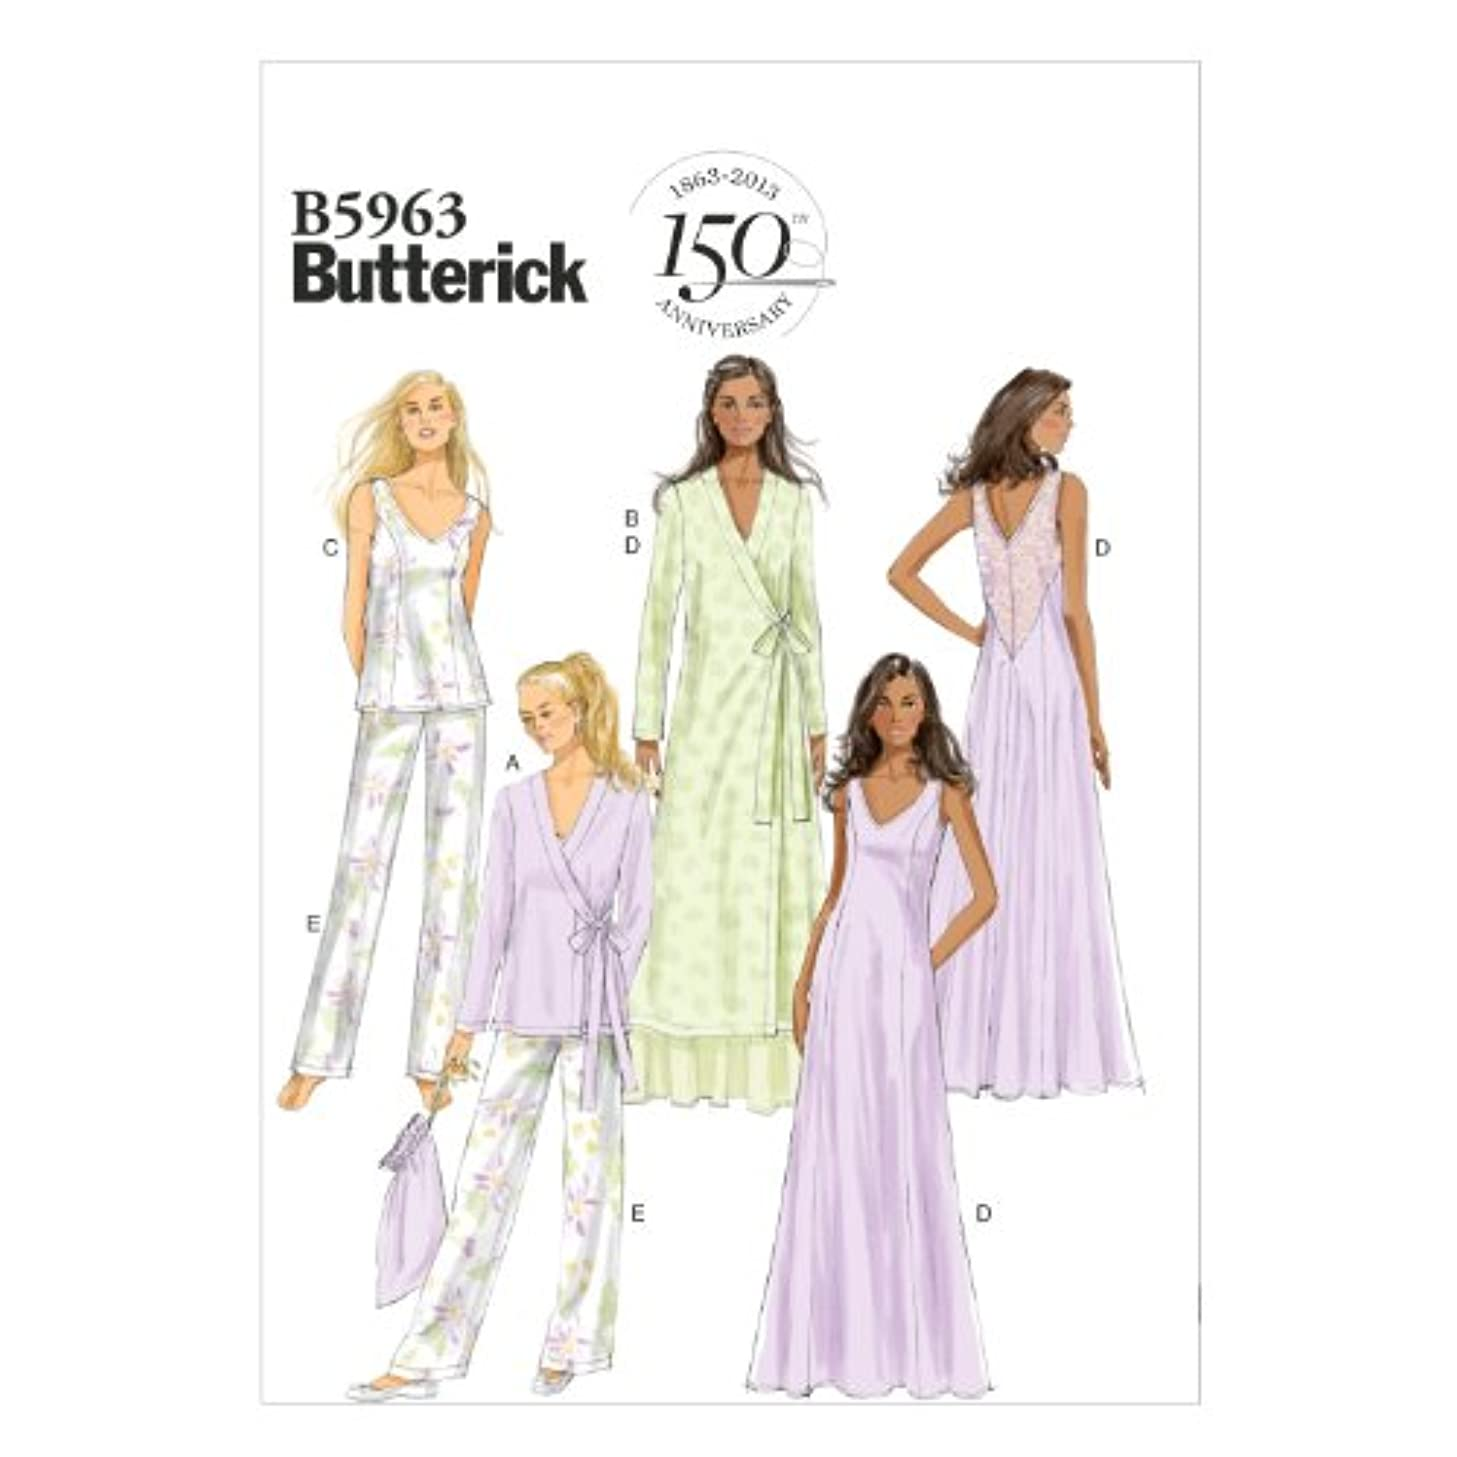 Butterick Patterns B5963 Misses' Robe, Top, Gown, Pants and Bag Sewing Templates, Size E5 (14-16-18-20-22)